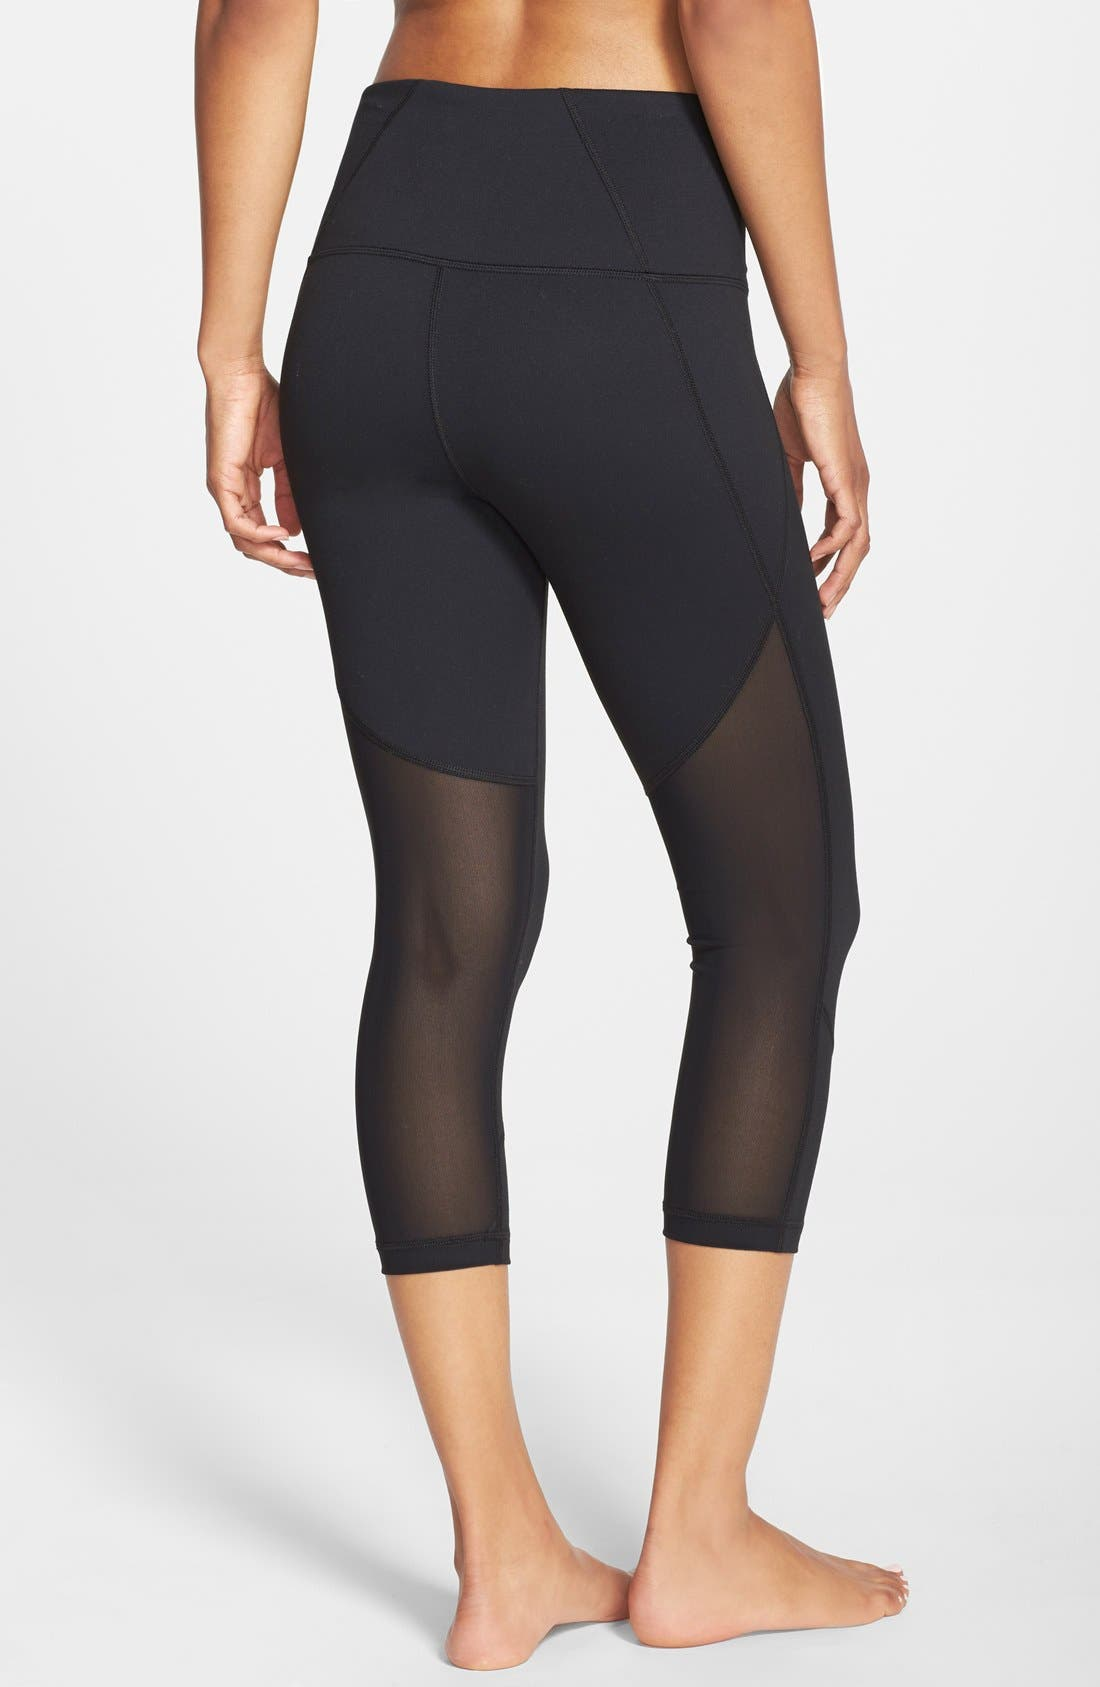 'Live In - Sultry' High Waist Mesh Crop Leggings,                         Main,                         color, 001